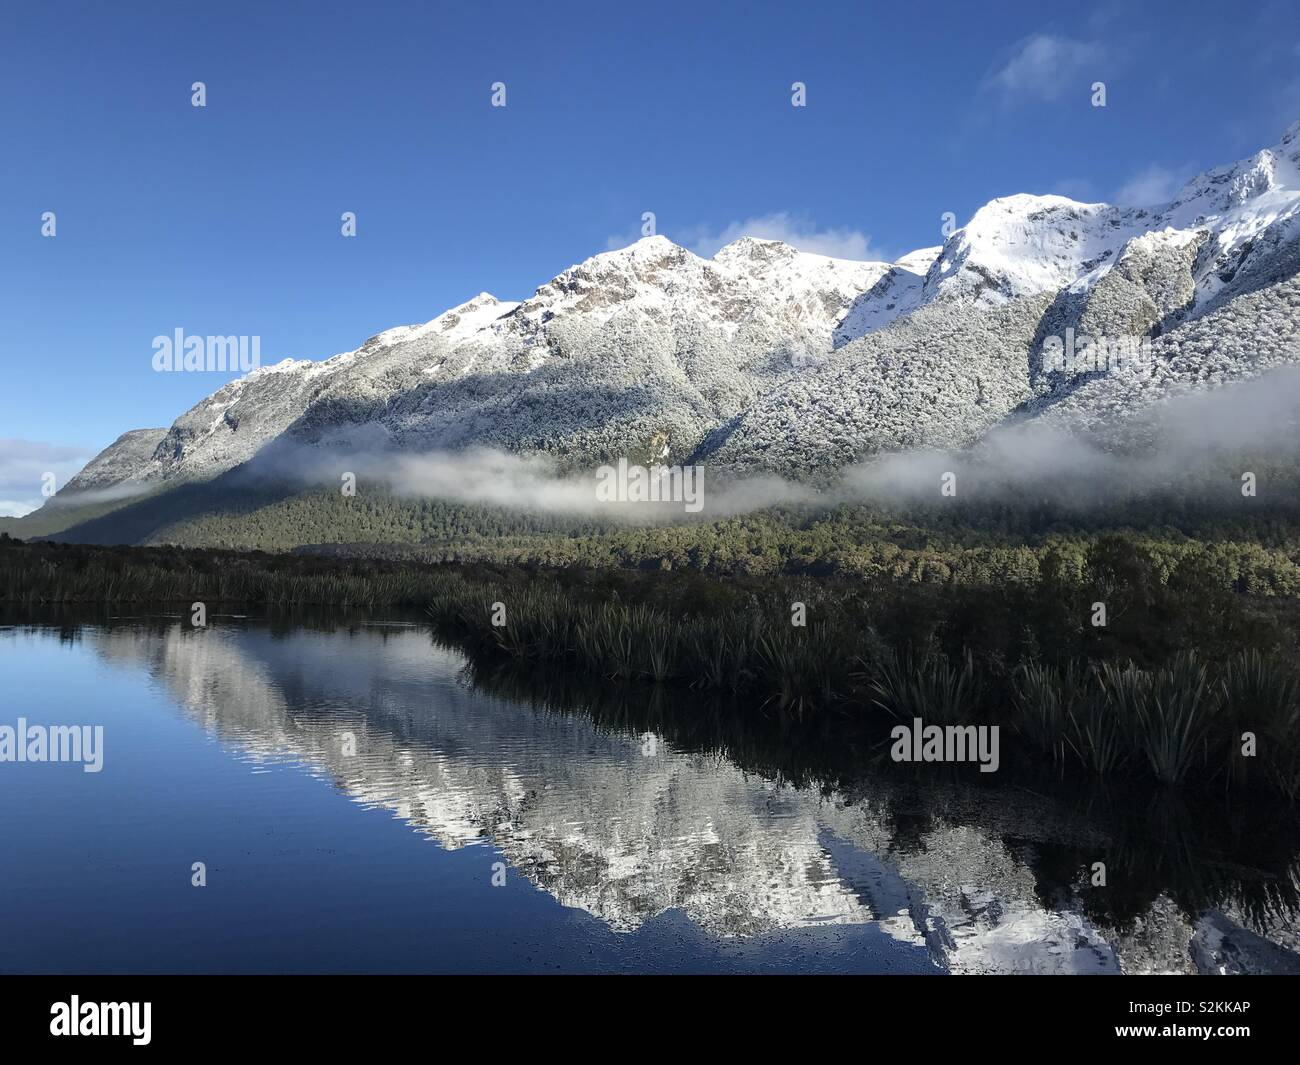 Reflecting Lake in New Zealand - Stock Image